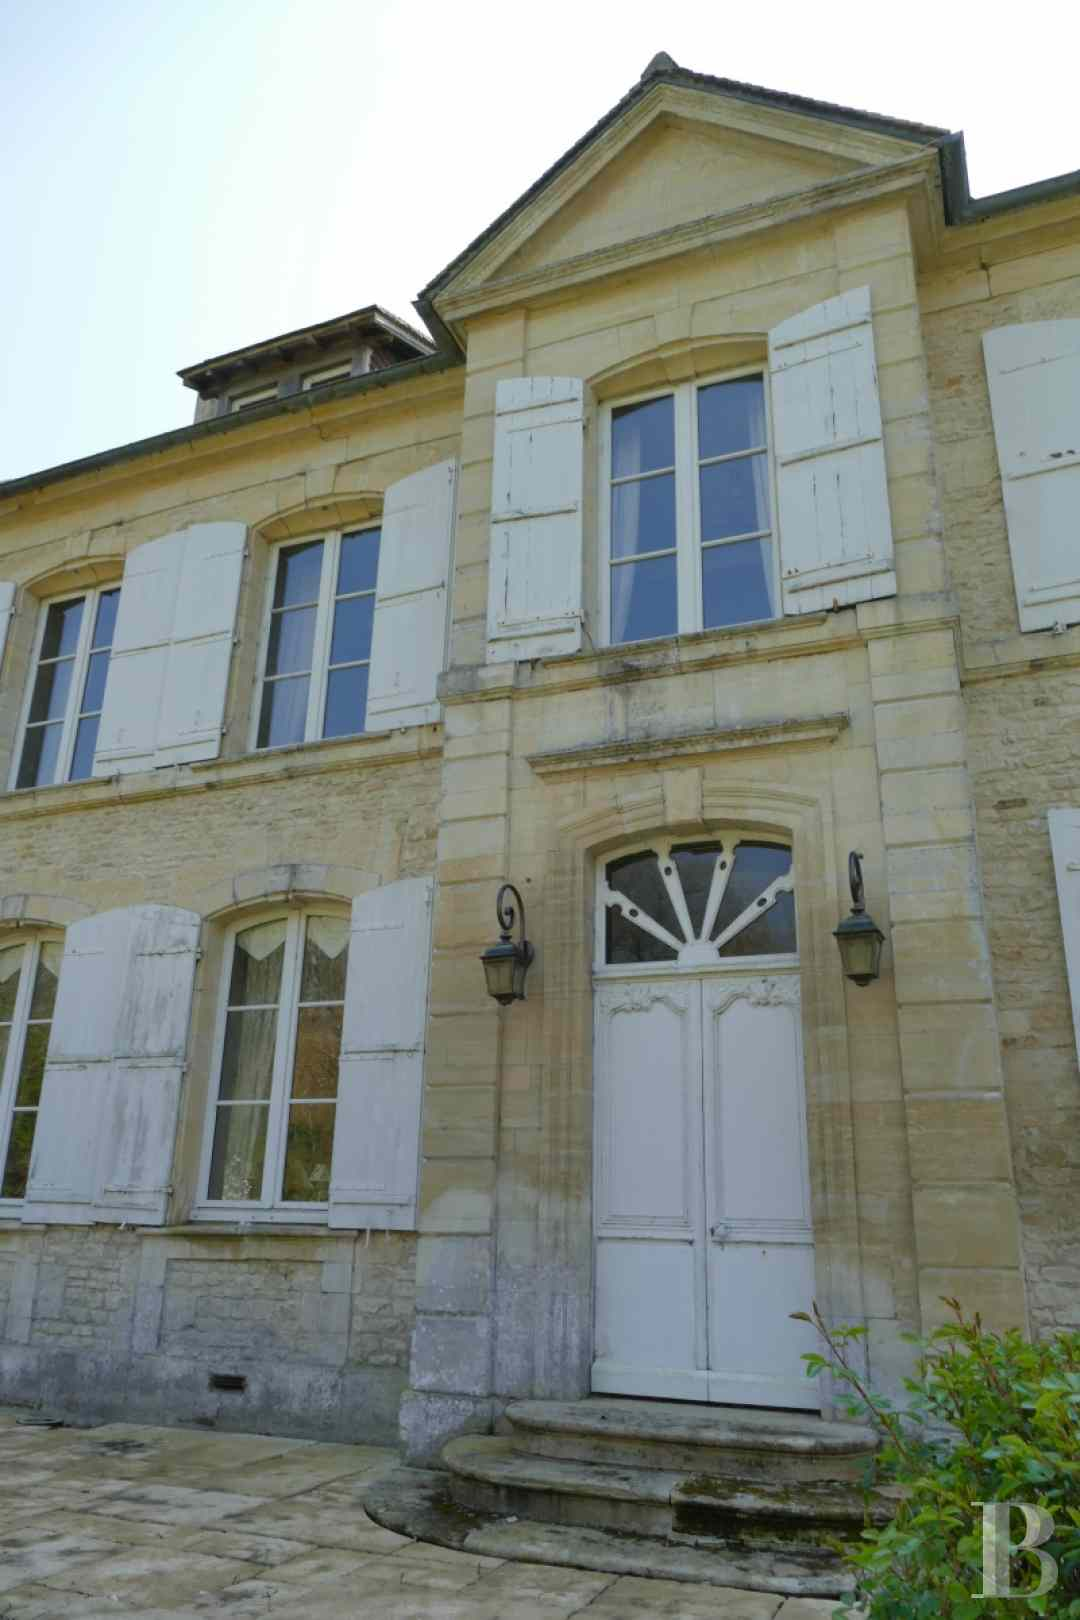 France mansions for sale lower normandy 4025  - 6 zoom